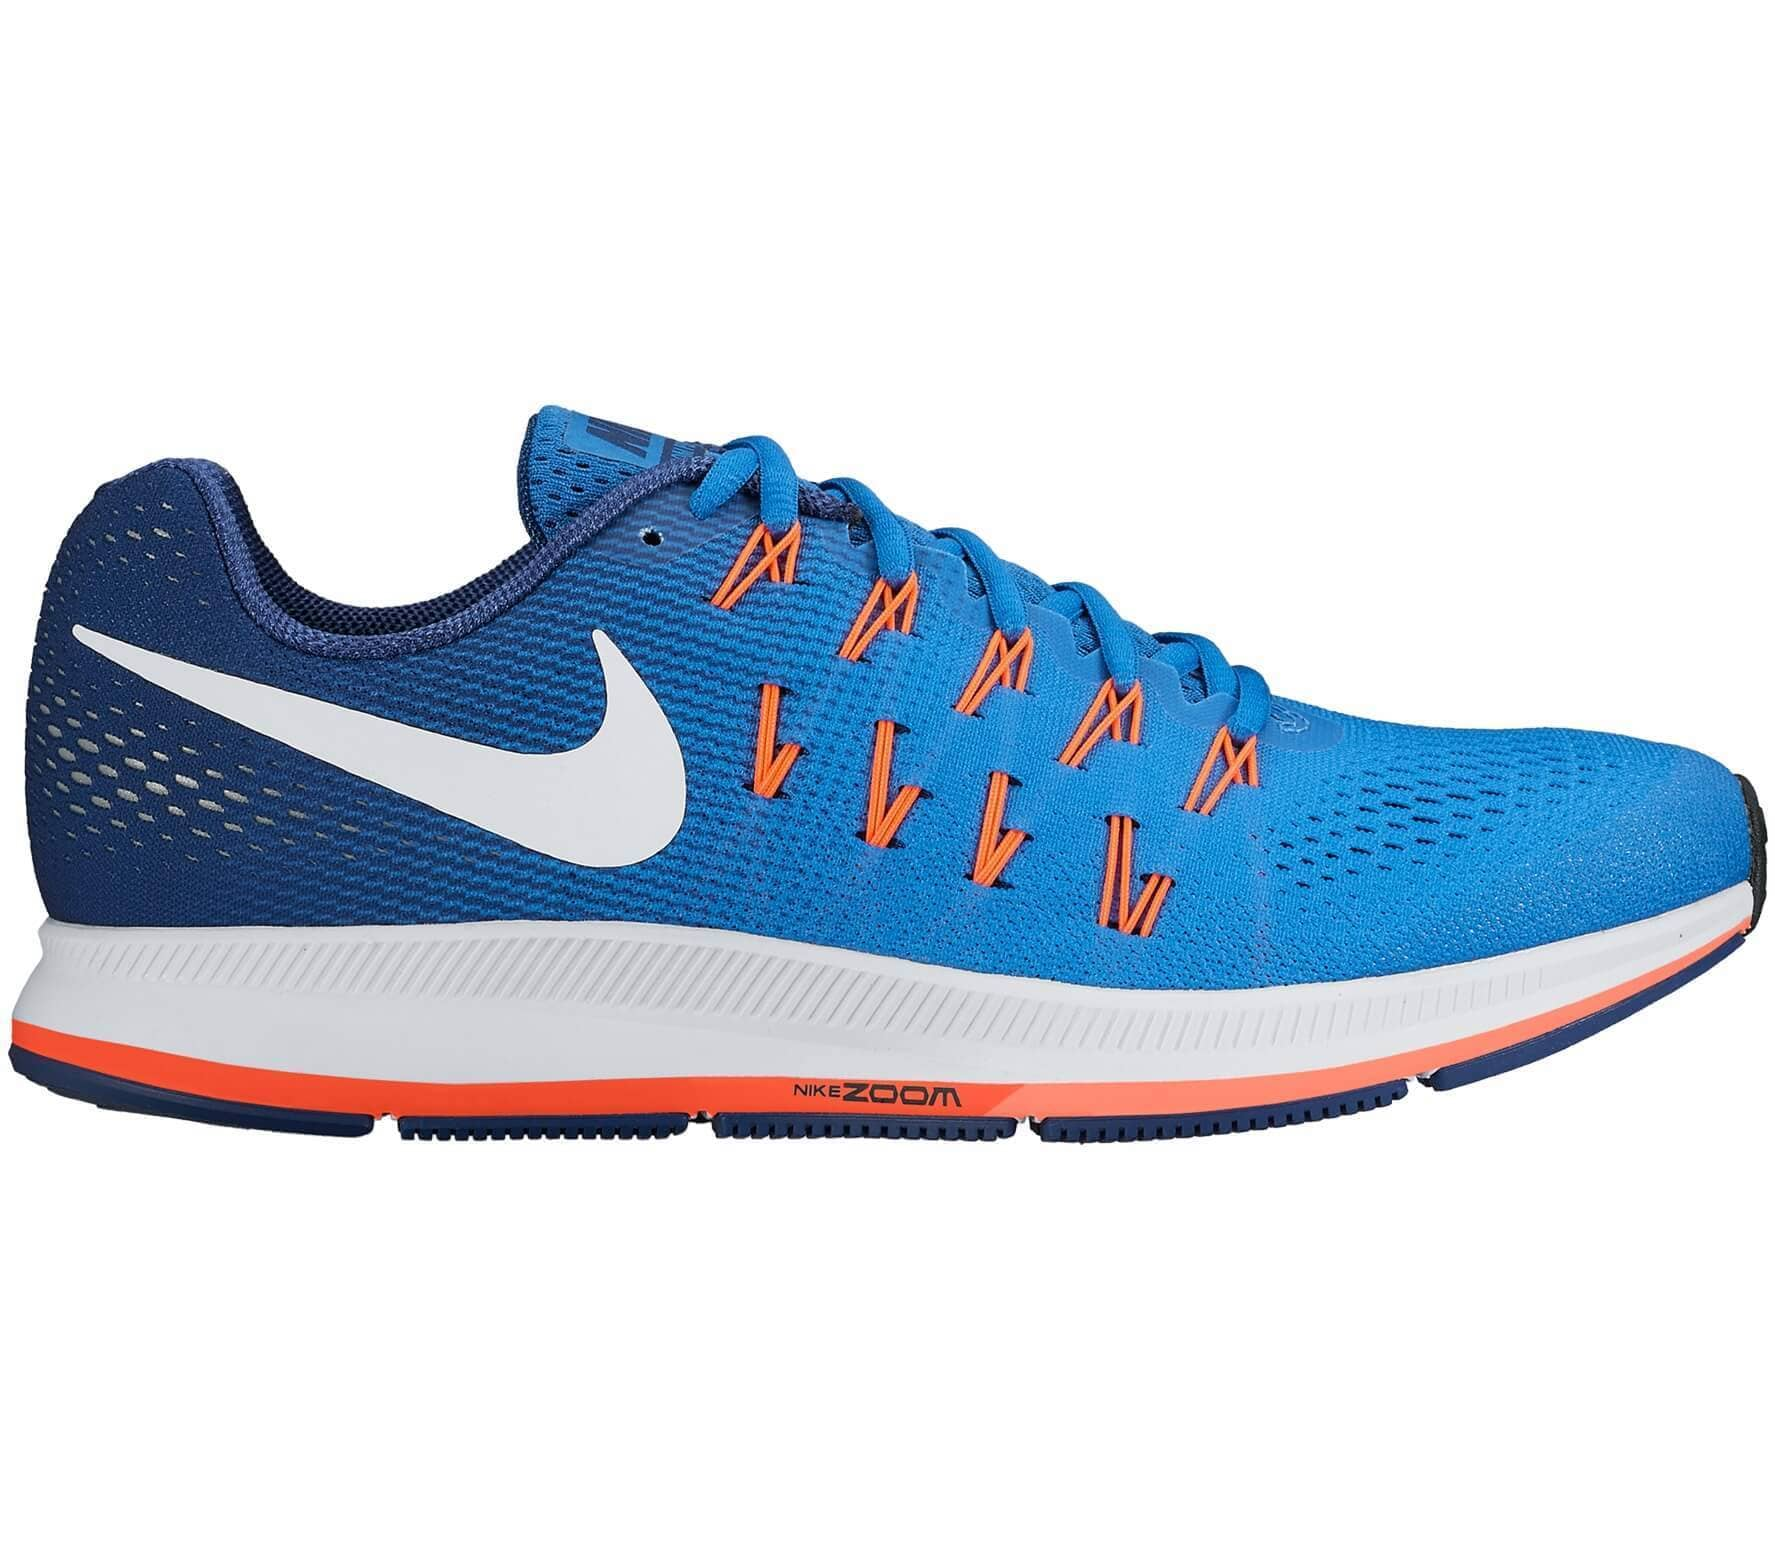 hot sale online 66706 b5560 Nike - Air Zoom Pegasus 33 men s running shoes (blue orange)